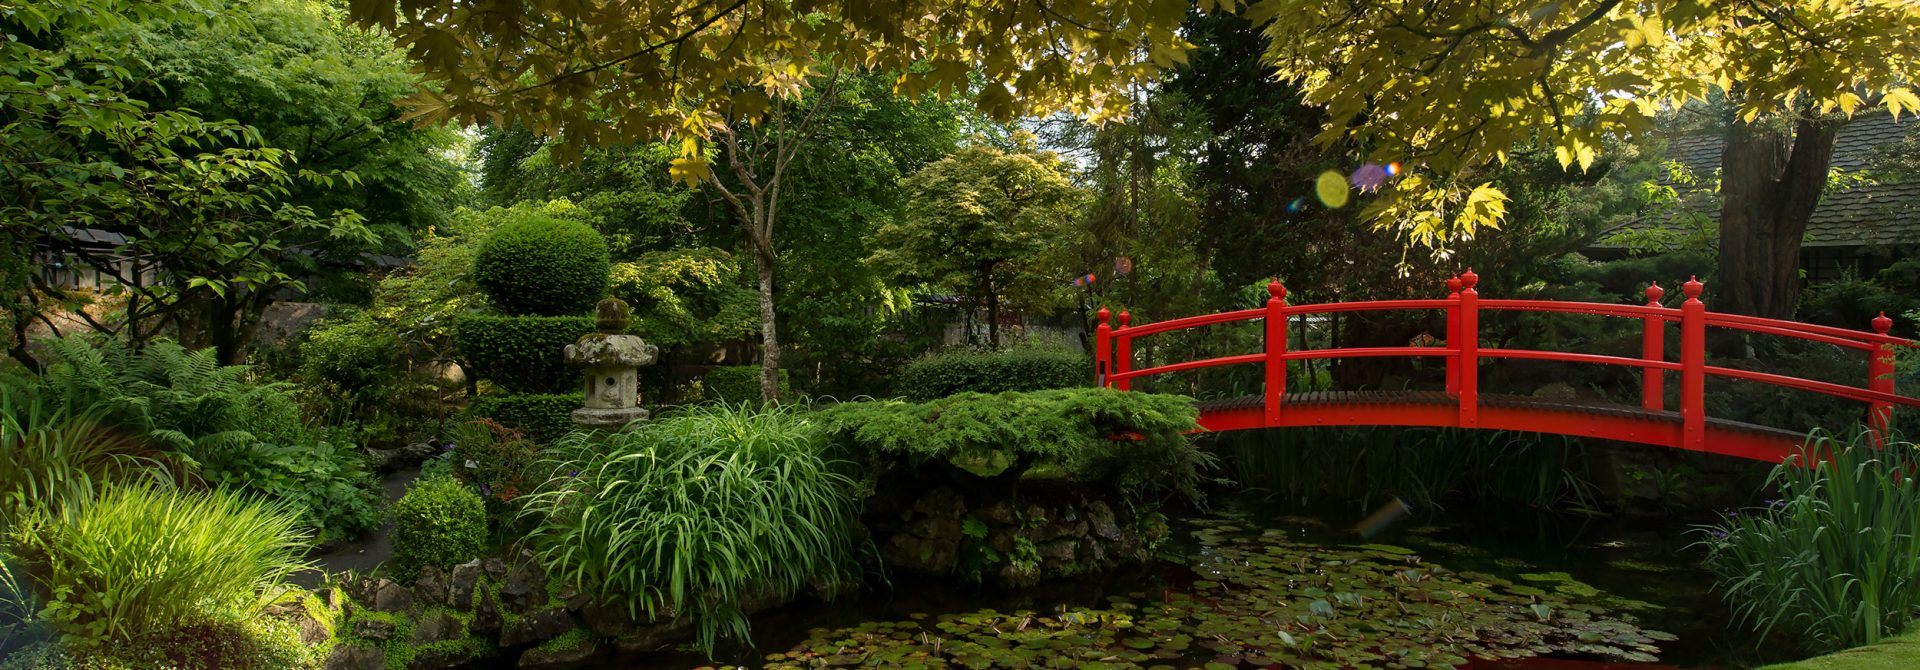 Irish national stud japanese gardens - Japanese garden ...